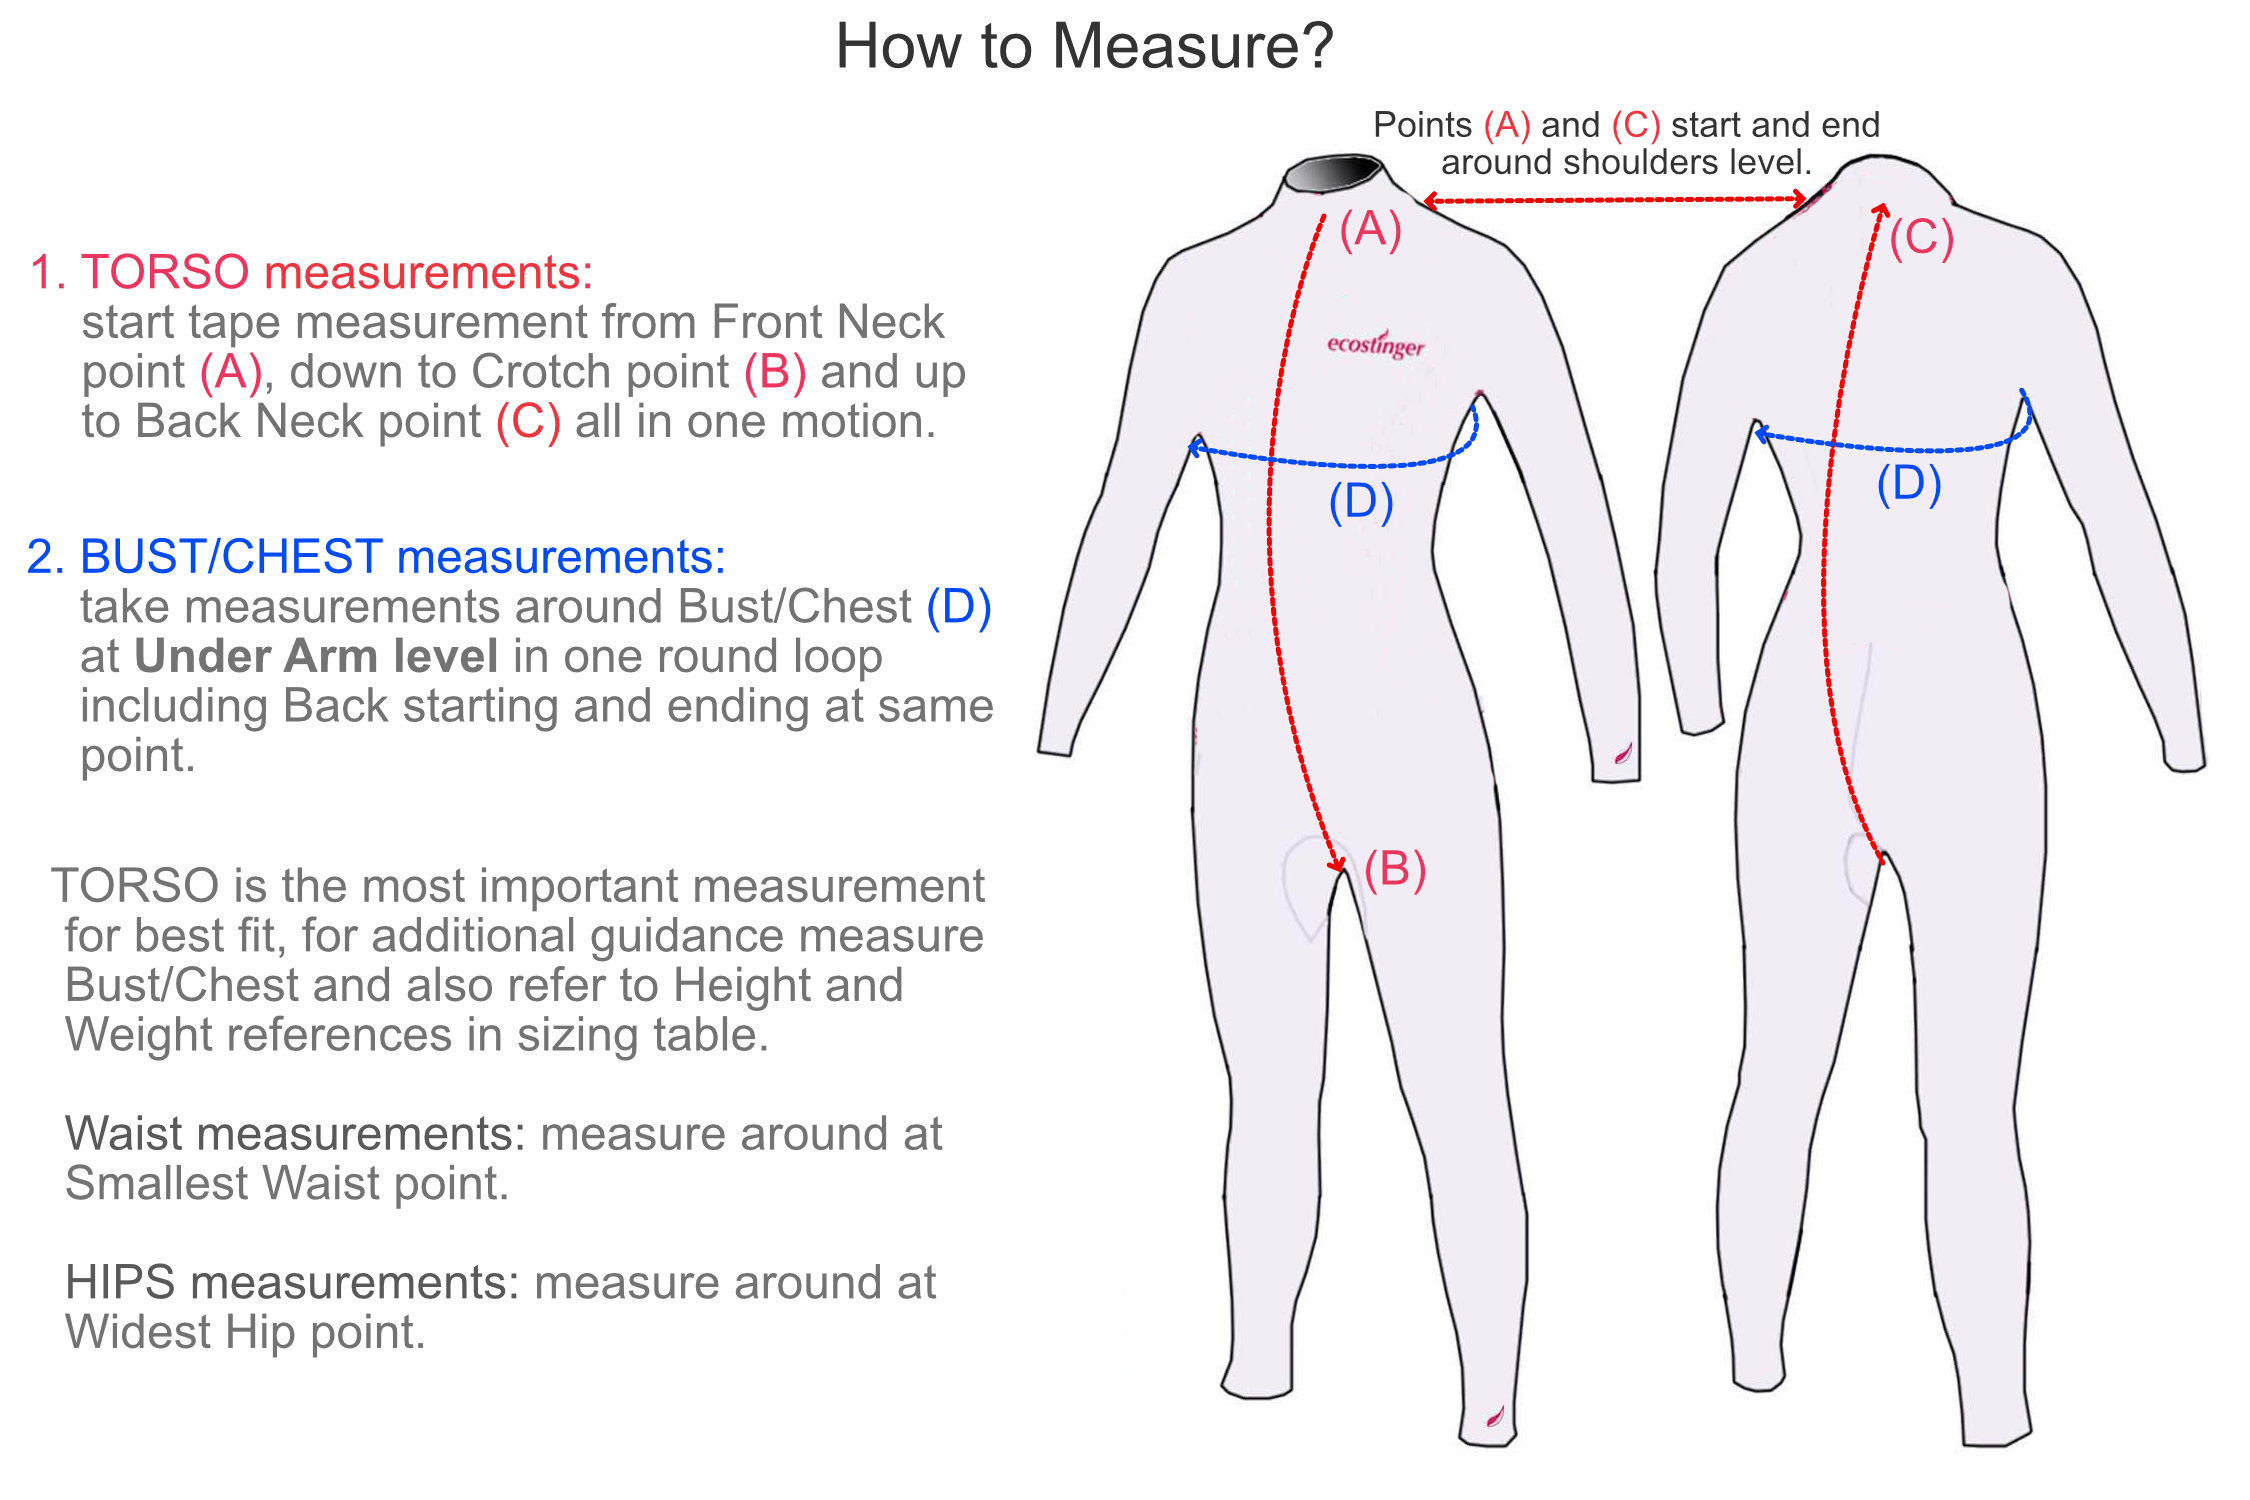 how-to-measure.jpg